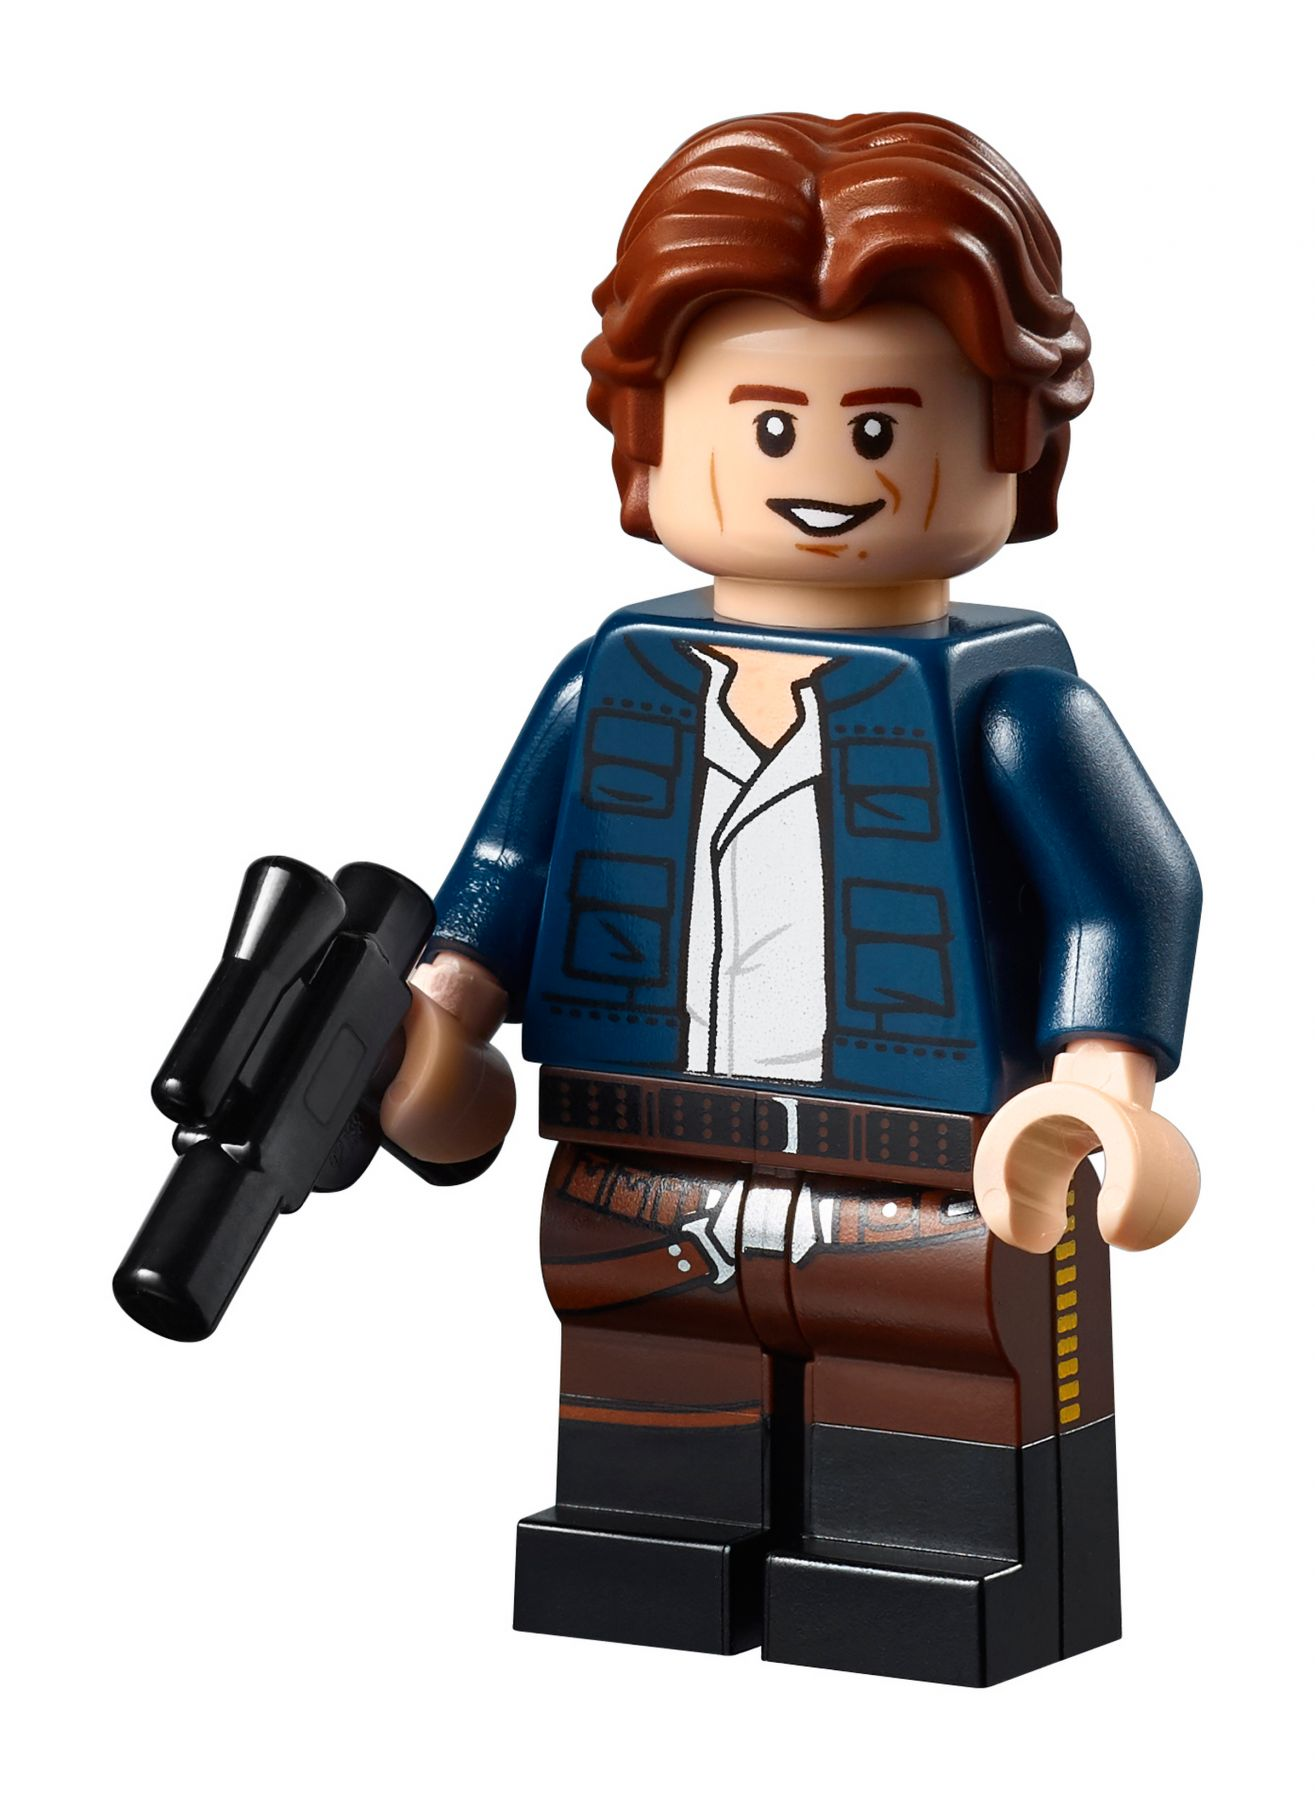 LEGO Star Wars 75222 Verrat in Cloud City™ LEGO_75222_alt16.jpg